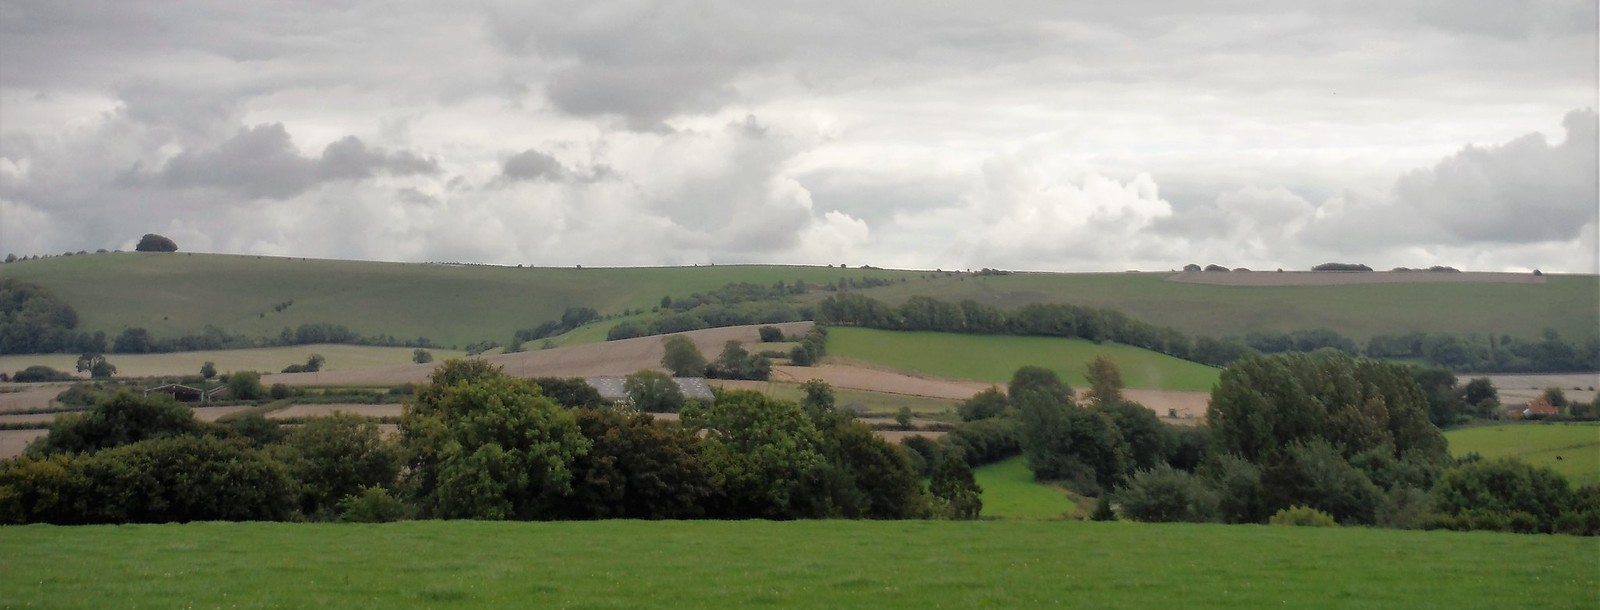 View from Horse Hill to Win Green SWC Walk 251 Tisbury Circular via Ludwell and Berwick St. John